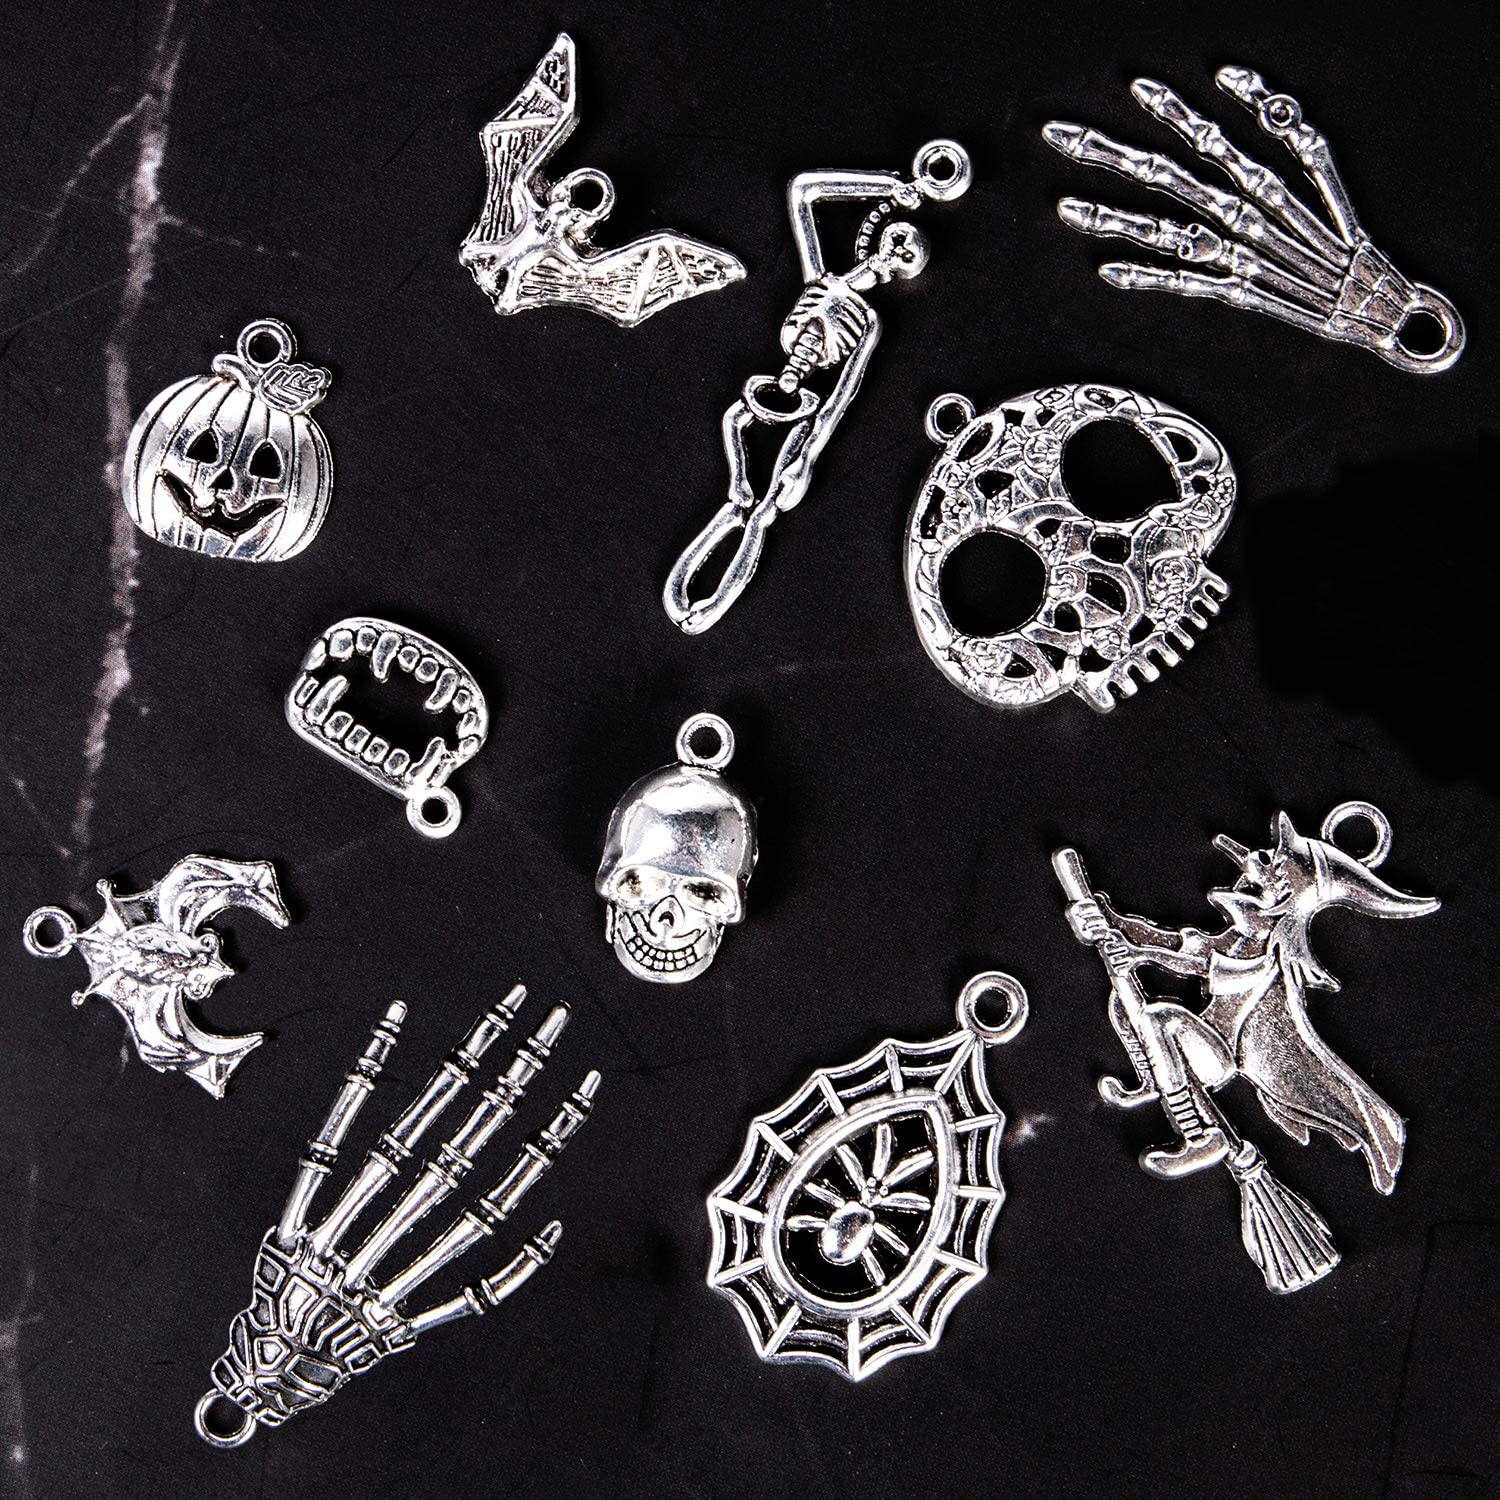 Halloween Silver Pendants Craft Supplies Halloween Jewelry Making Accessory for DIY Necklace Bracelet and More About 165-171 Pcs Halloween Charms Korlon 300 Grams